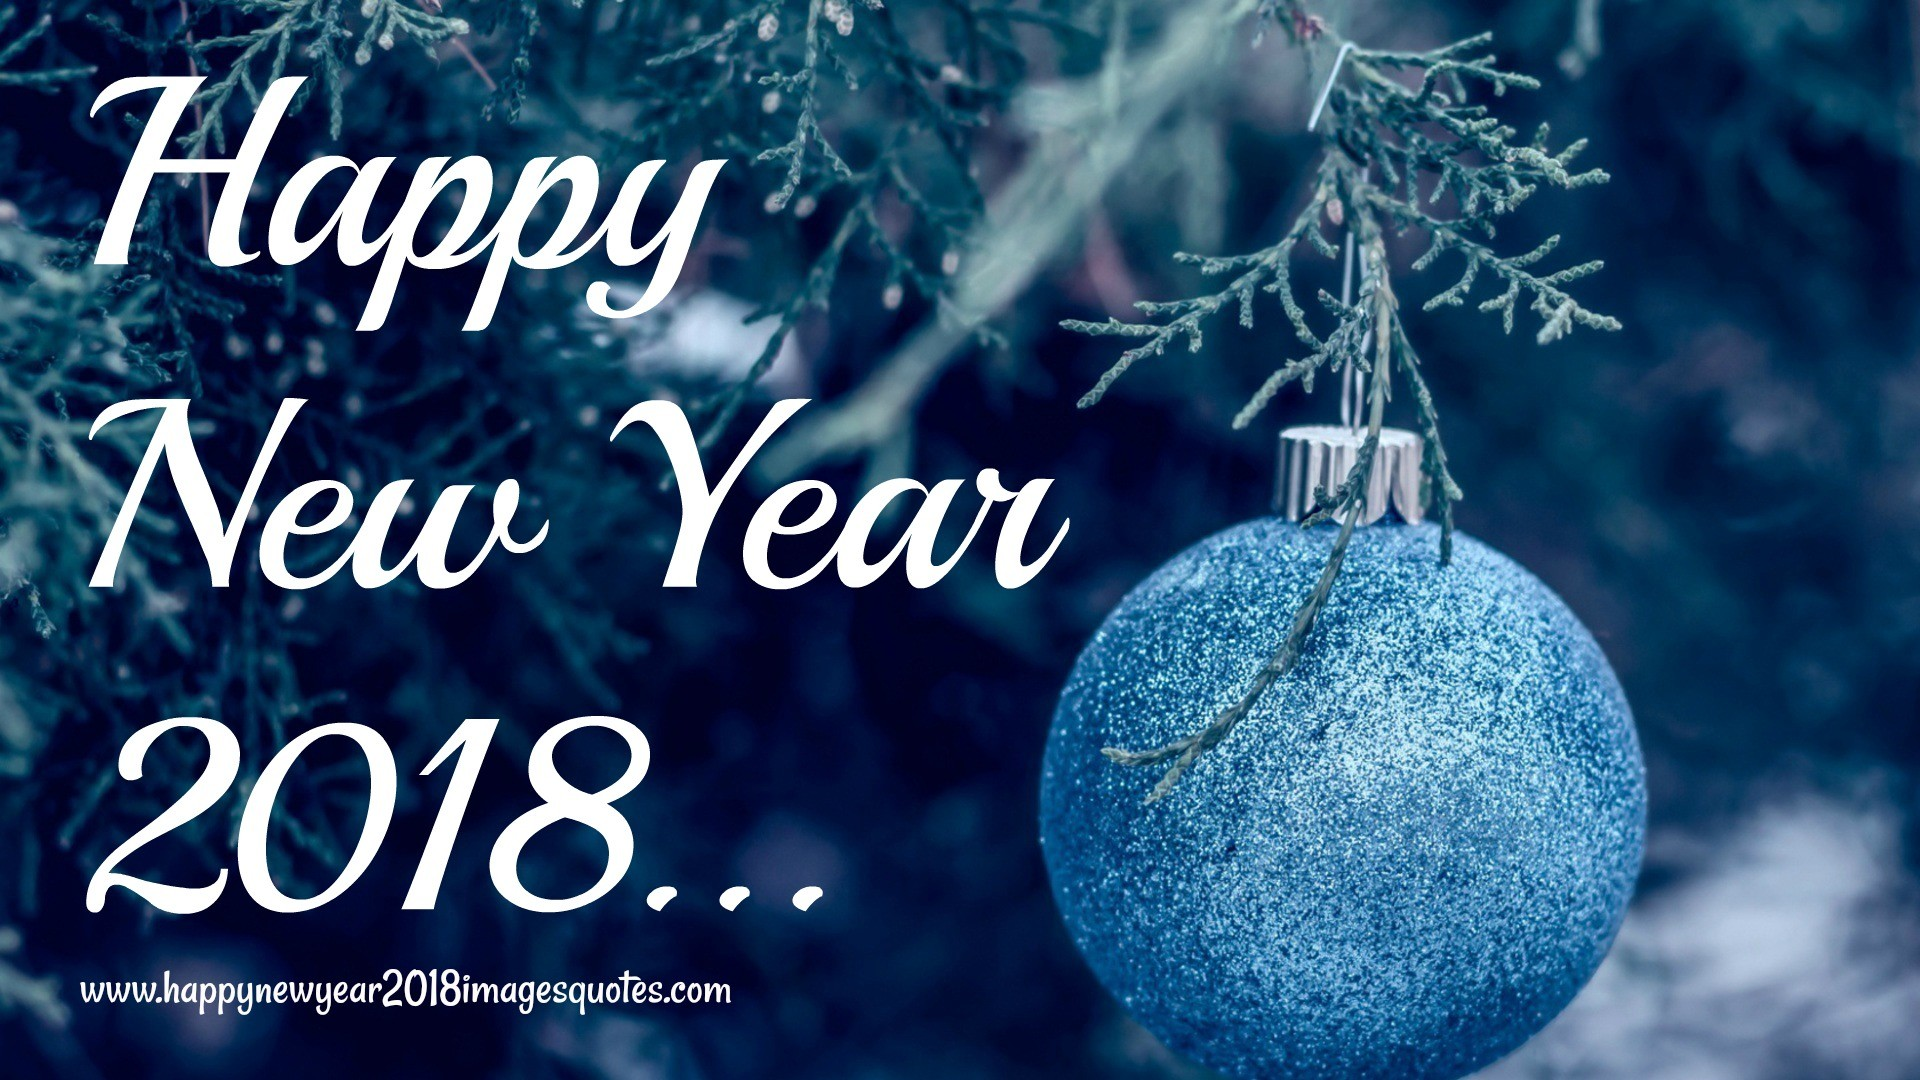 1920x1080 happy new year 2018 wallpapers full hd quality animated wallpaper download 2018